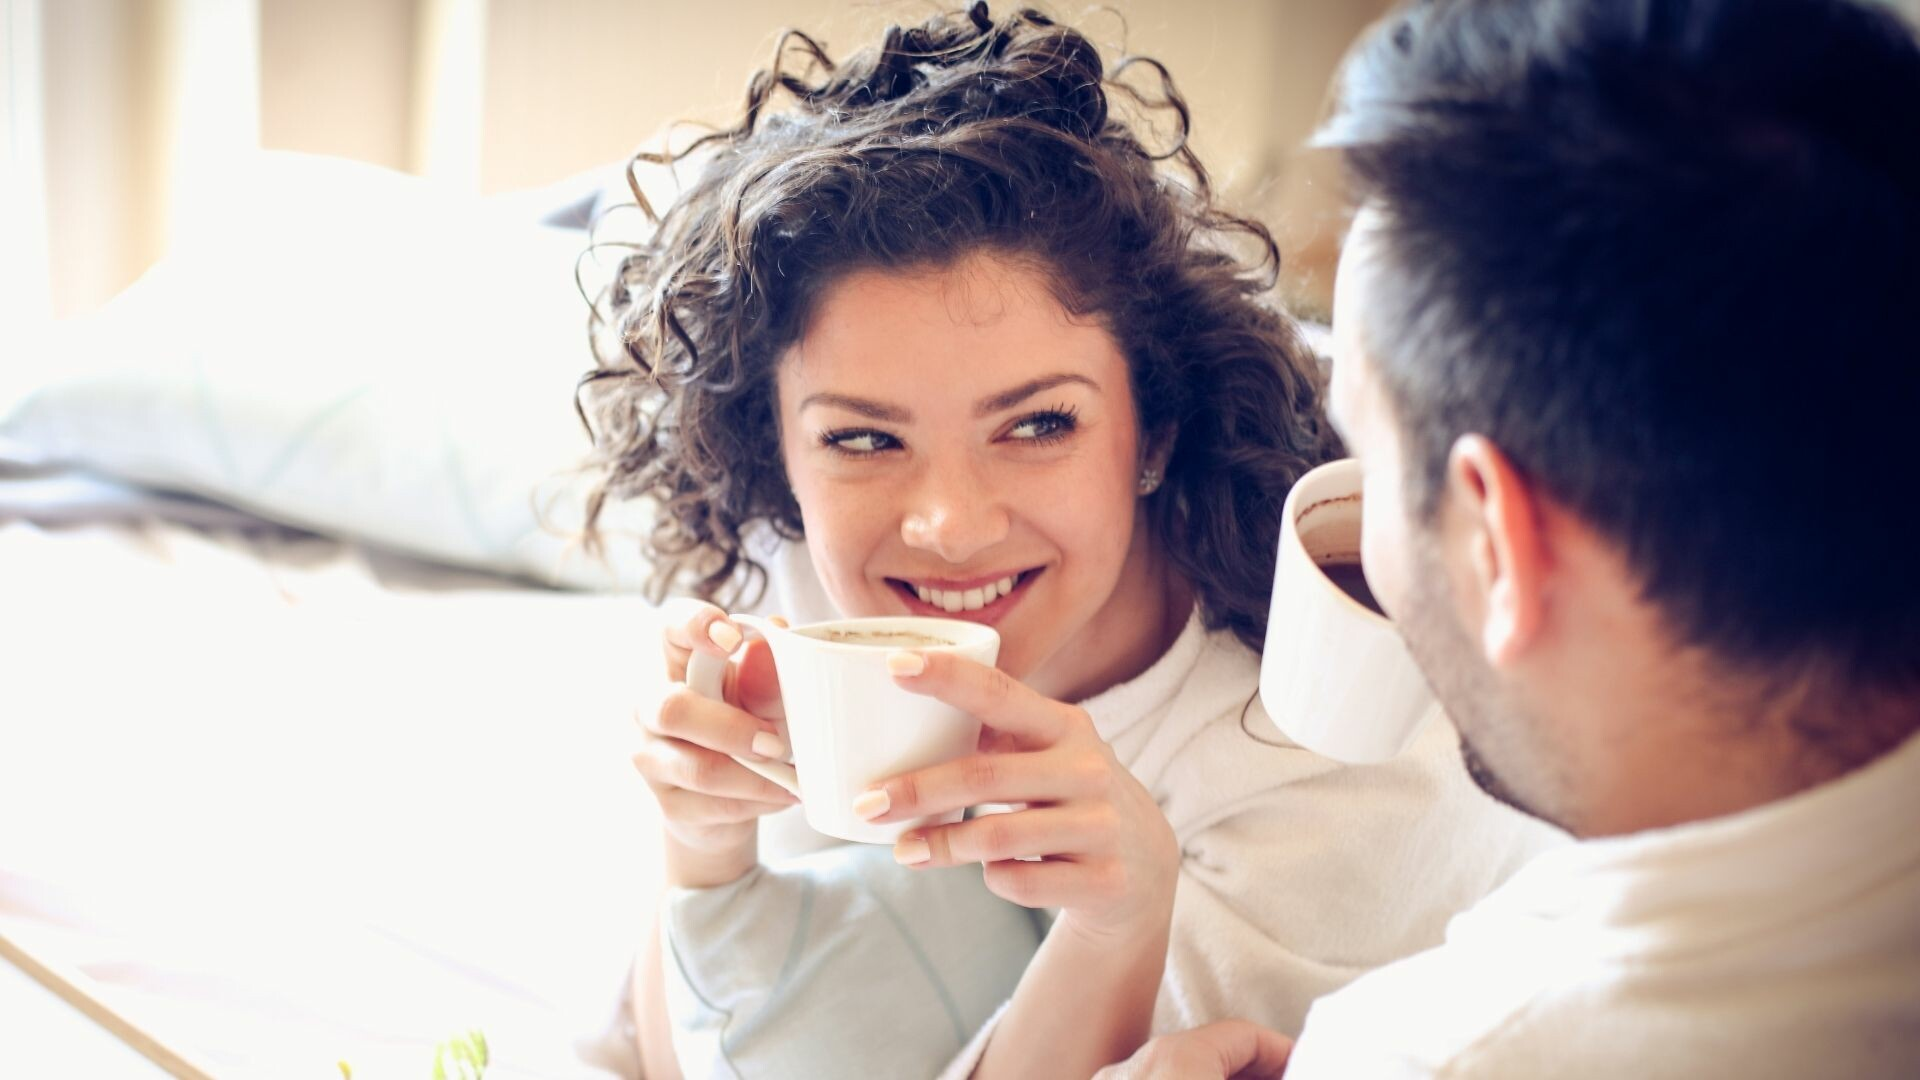 Use This Conversation Hack To Connect With Her